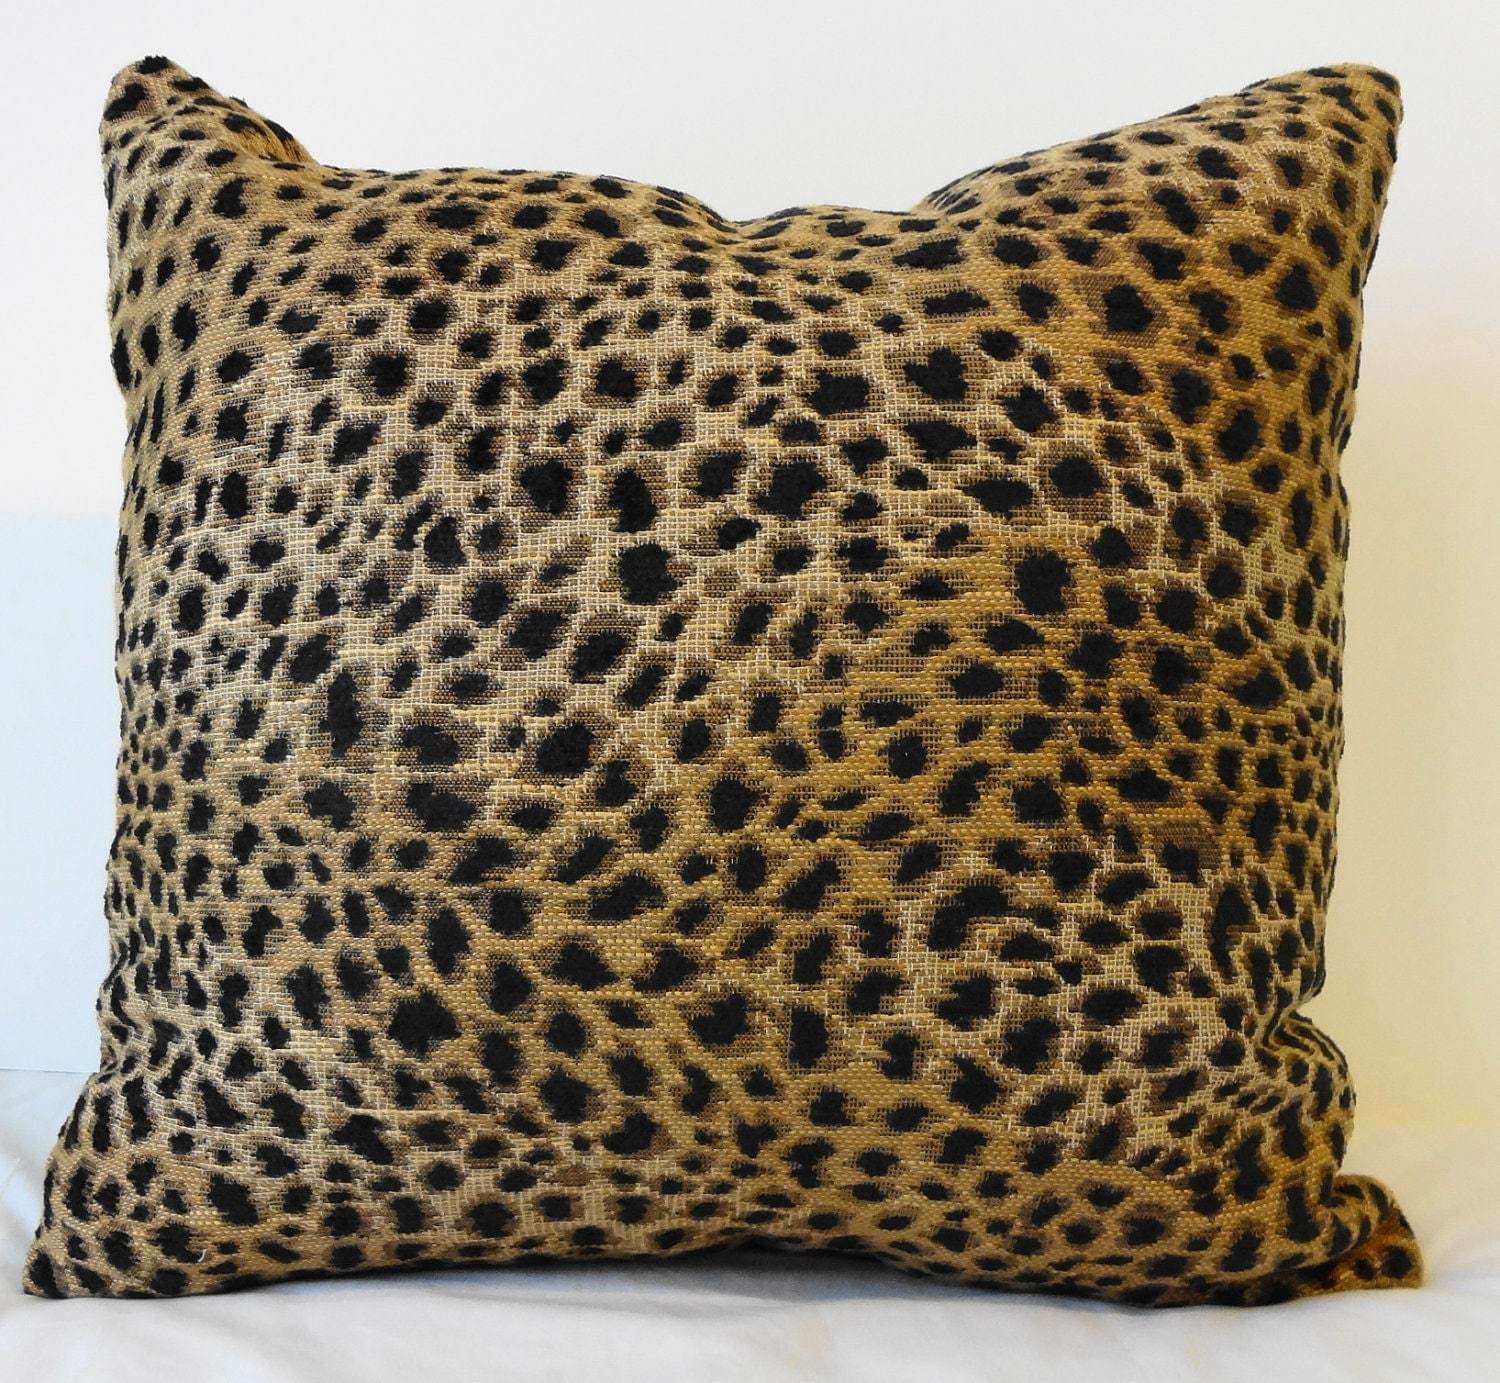 Animal Pillows : Leopard Print Decorative Pillow Cover Cheetah Animal Print